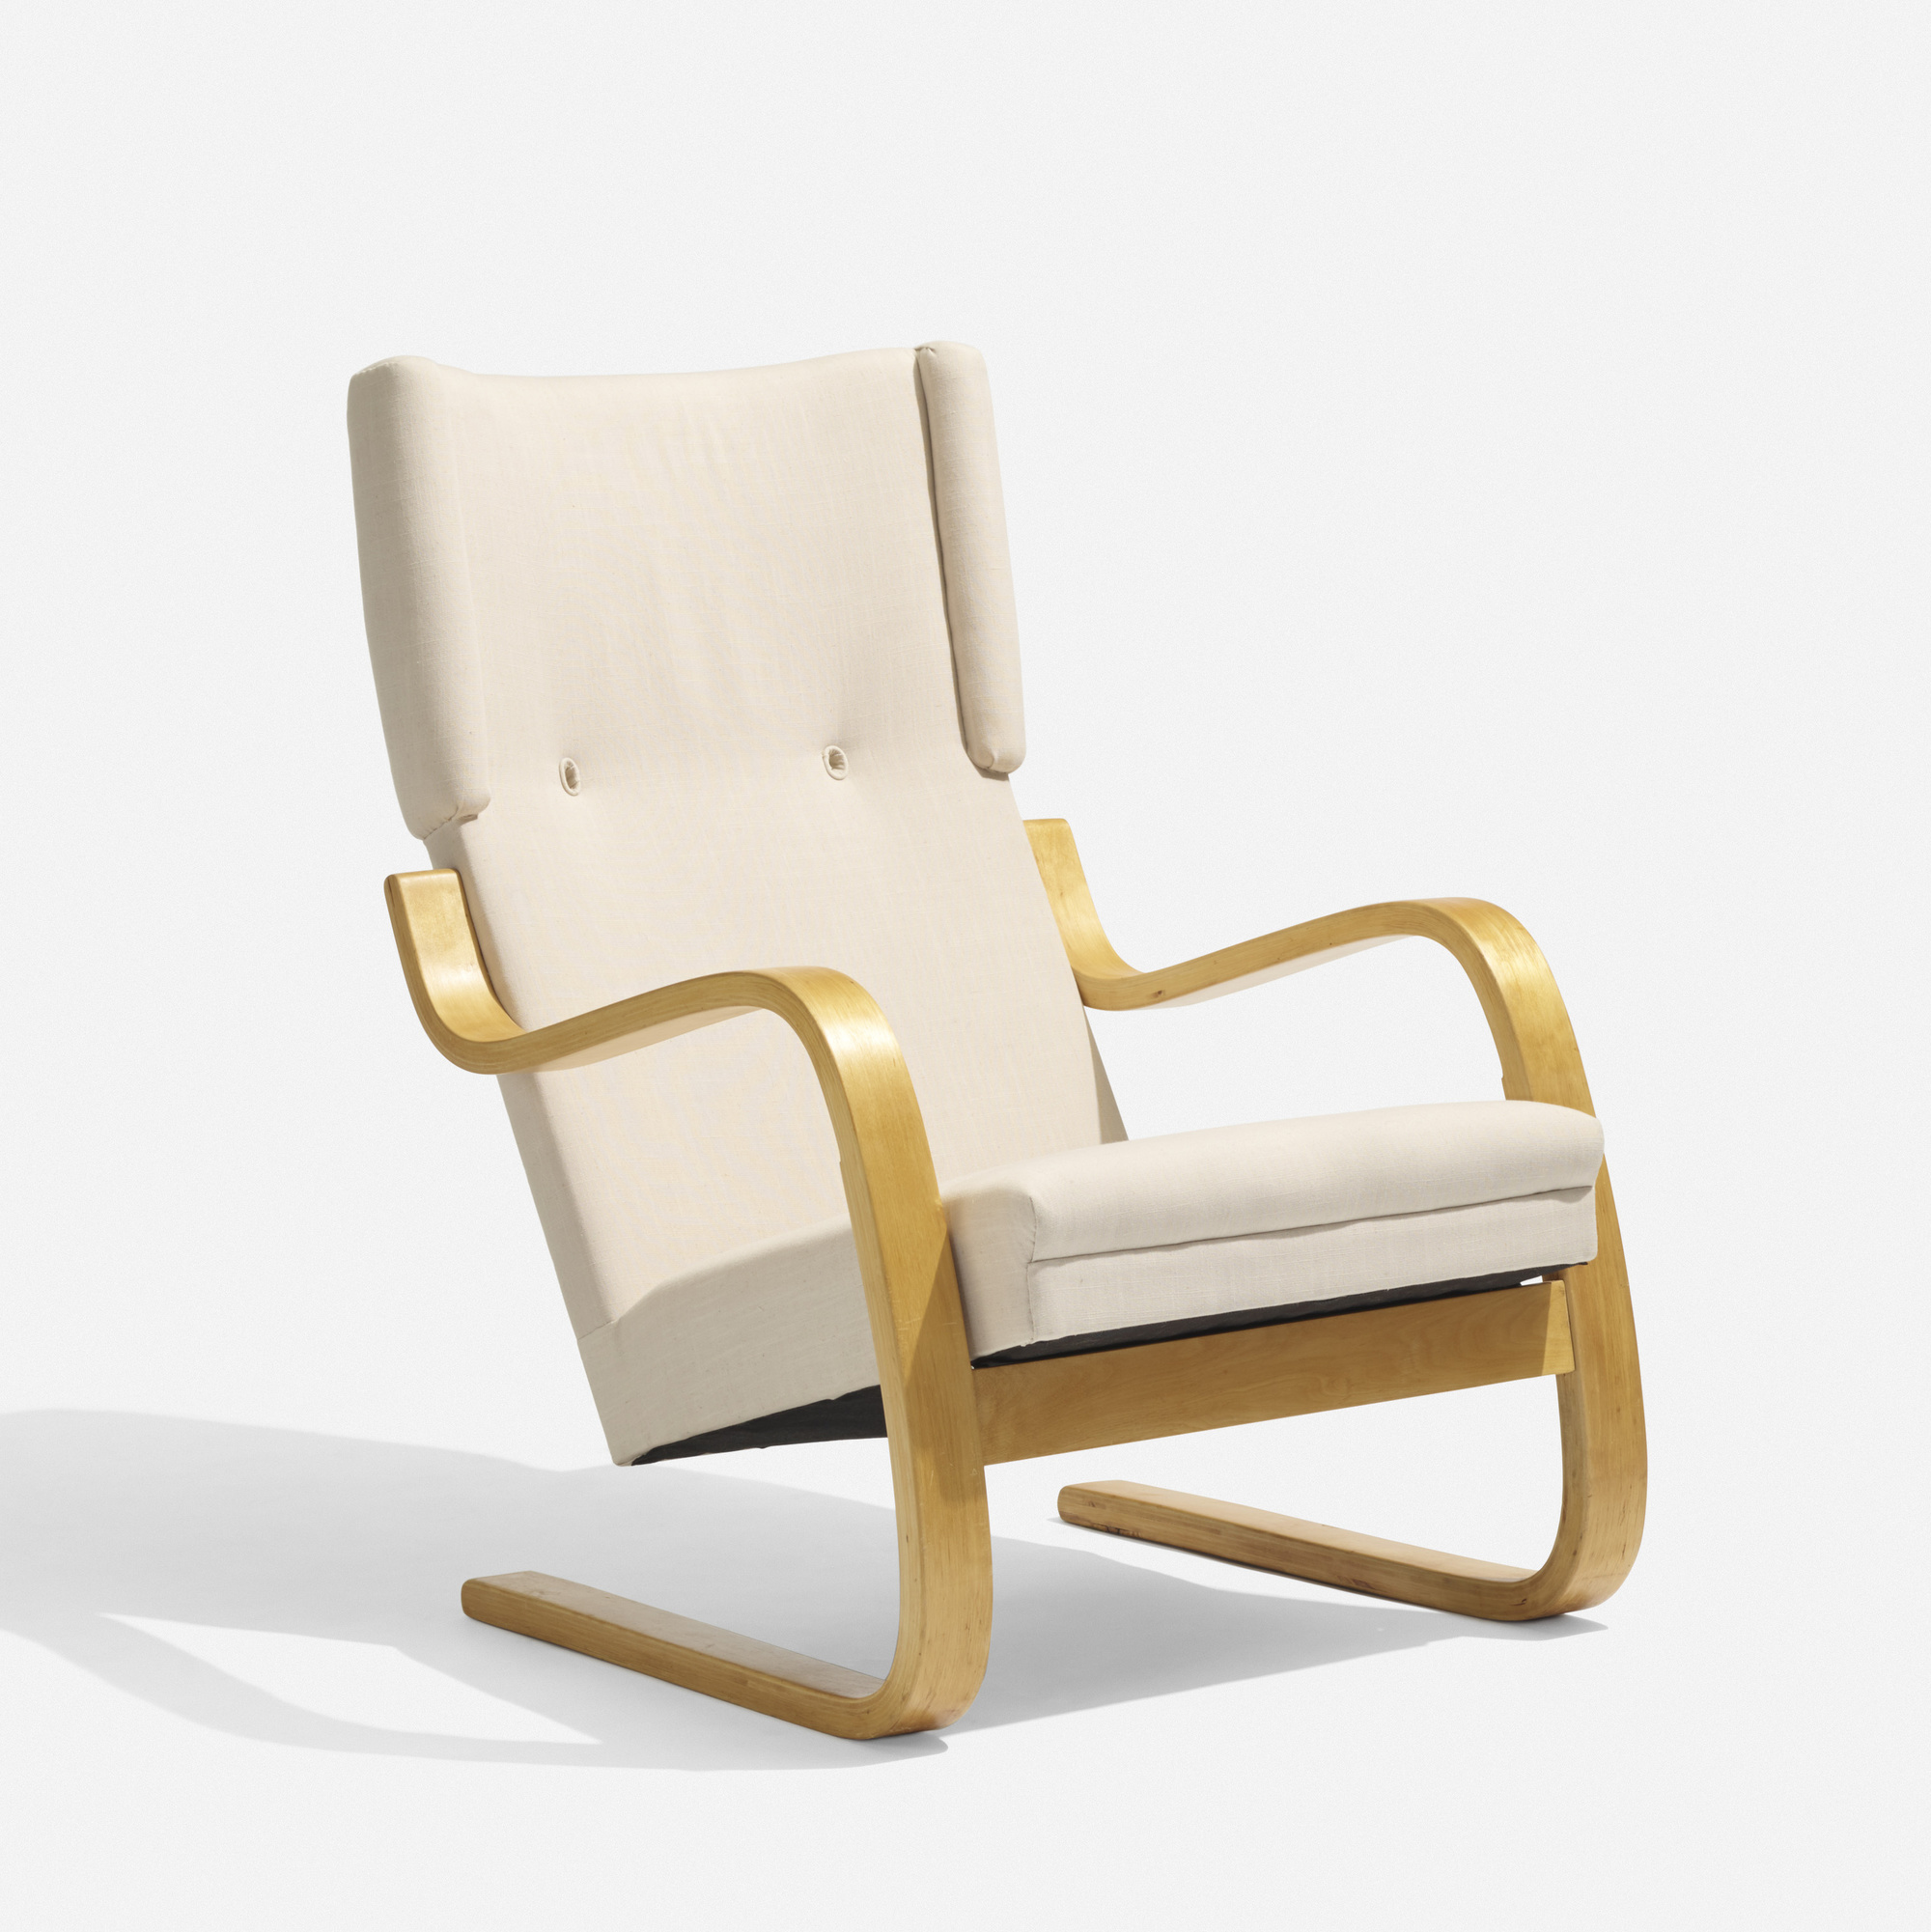 319: Alvar Aalto / Cantilevered Armchair, Model 36/401 (1 Of 3